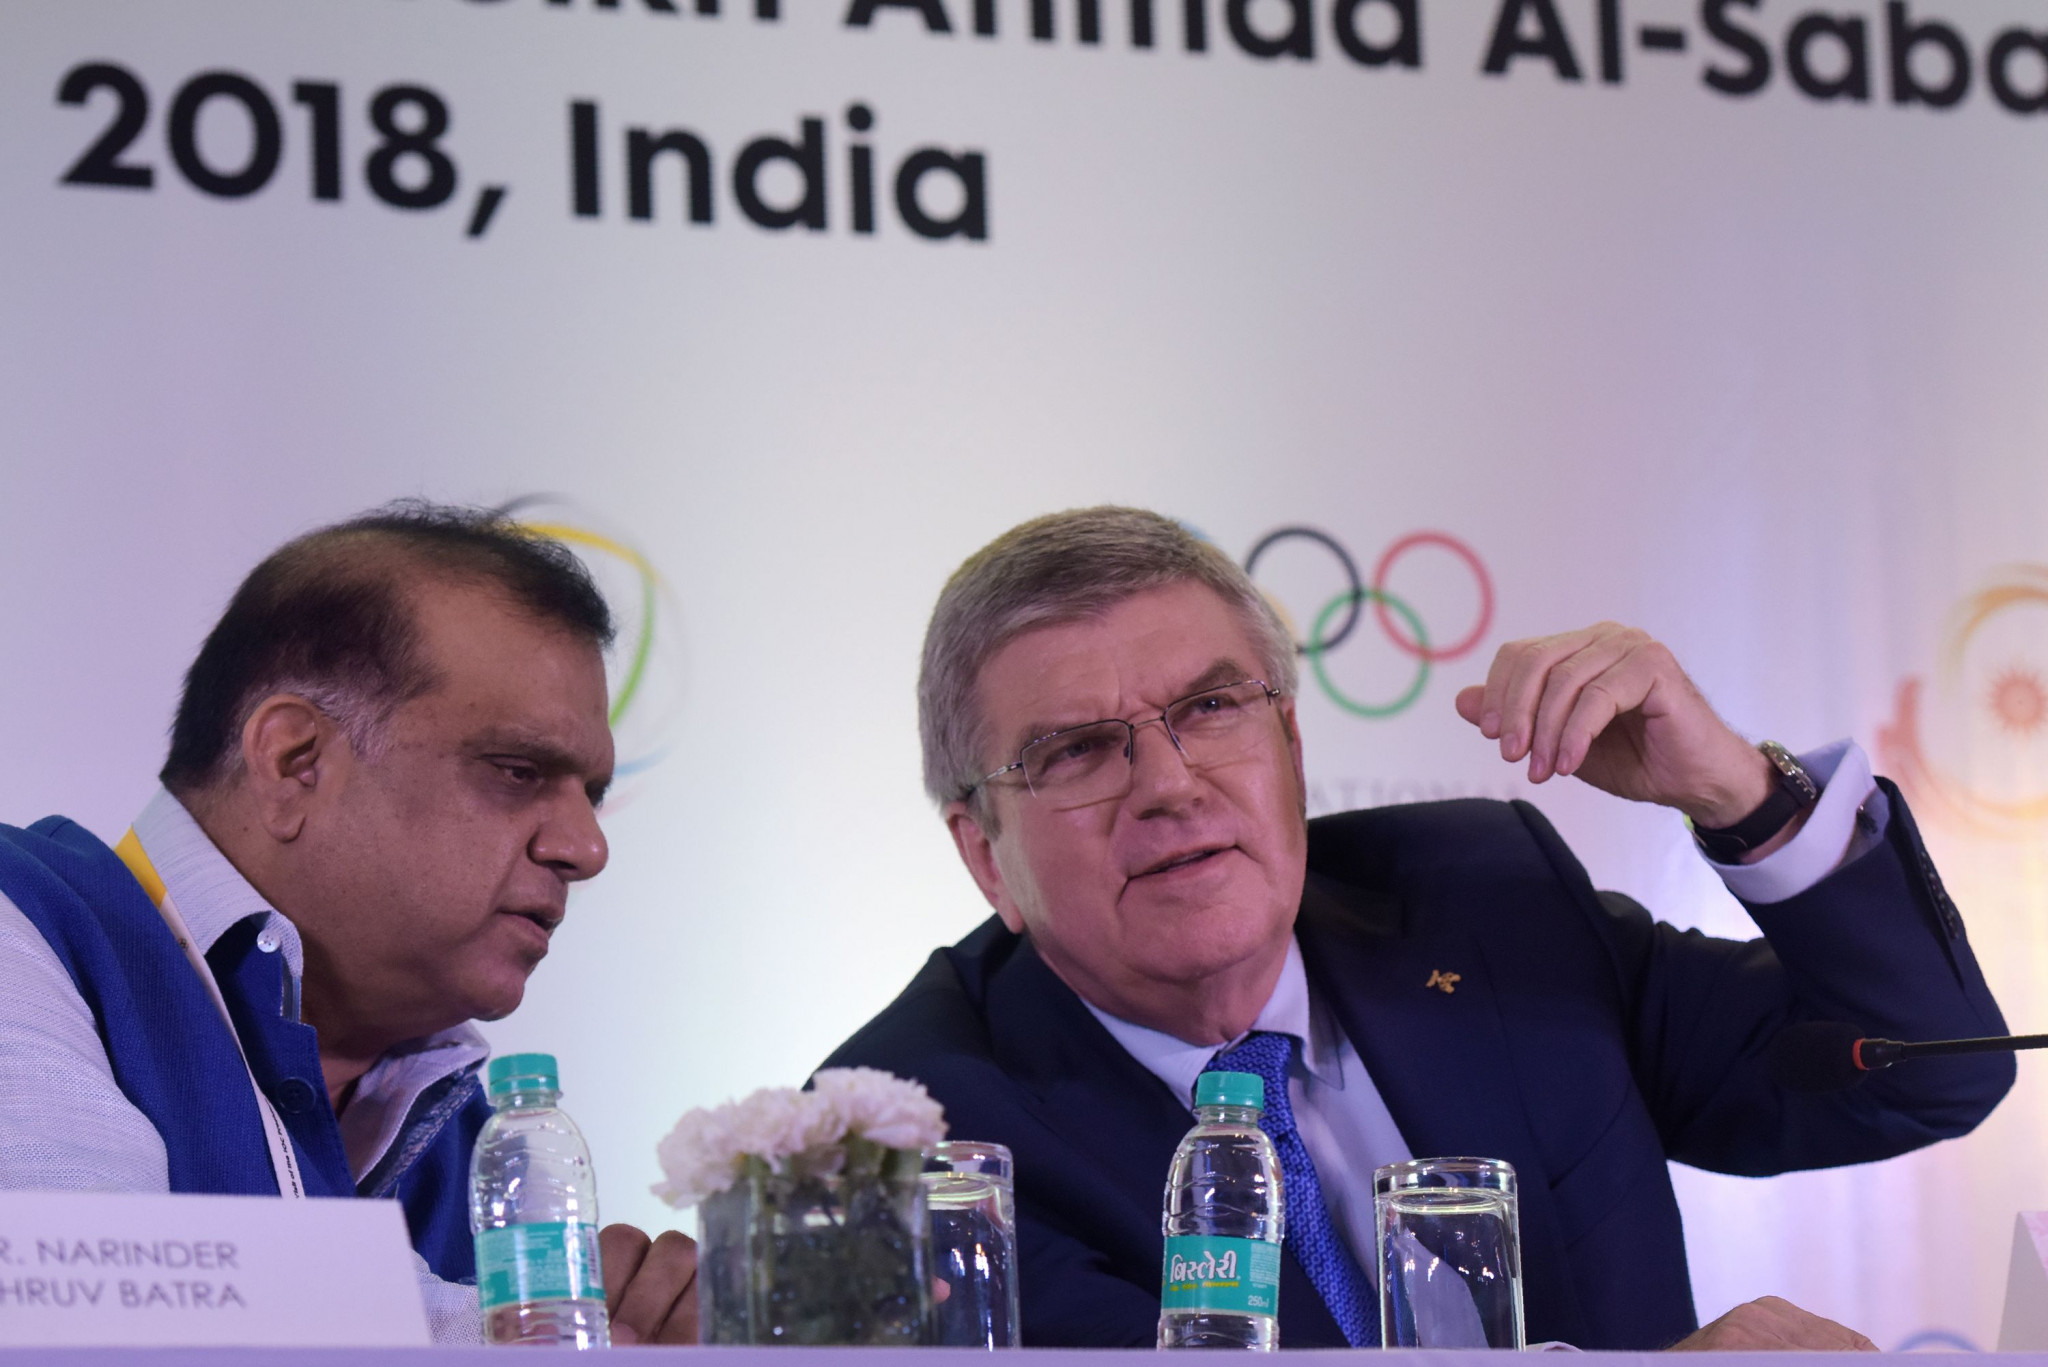 Indian Olympic Committee and International Hockey Federation President Narinder Batra, left, is set to join the IOC after it was announced by Thomas Bach, right, that he was among 10 new members being put forward ©Getty Images